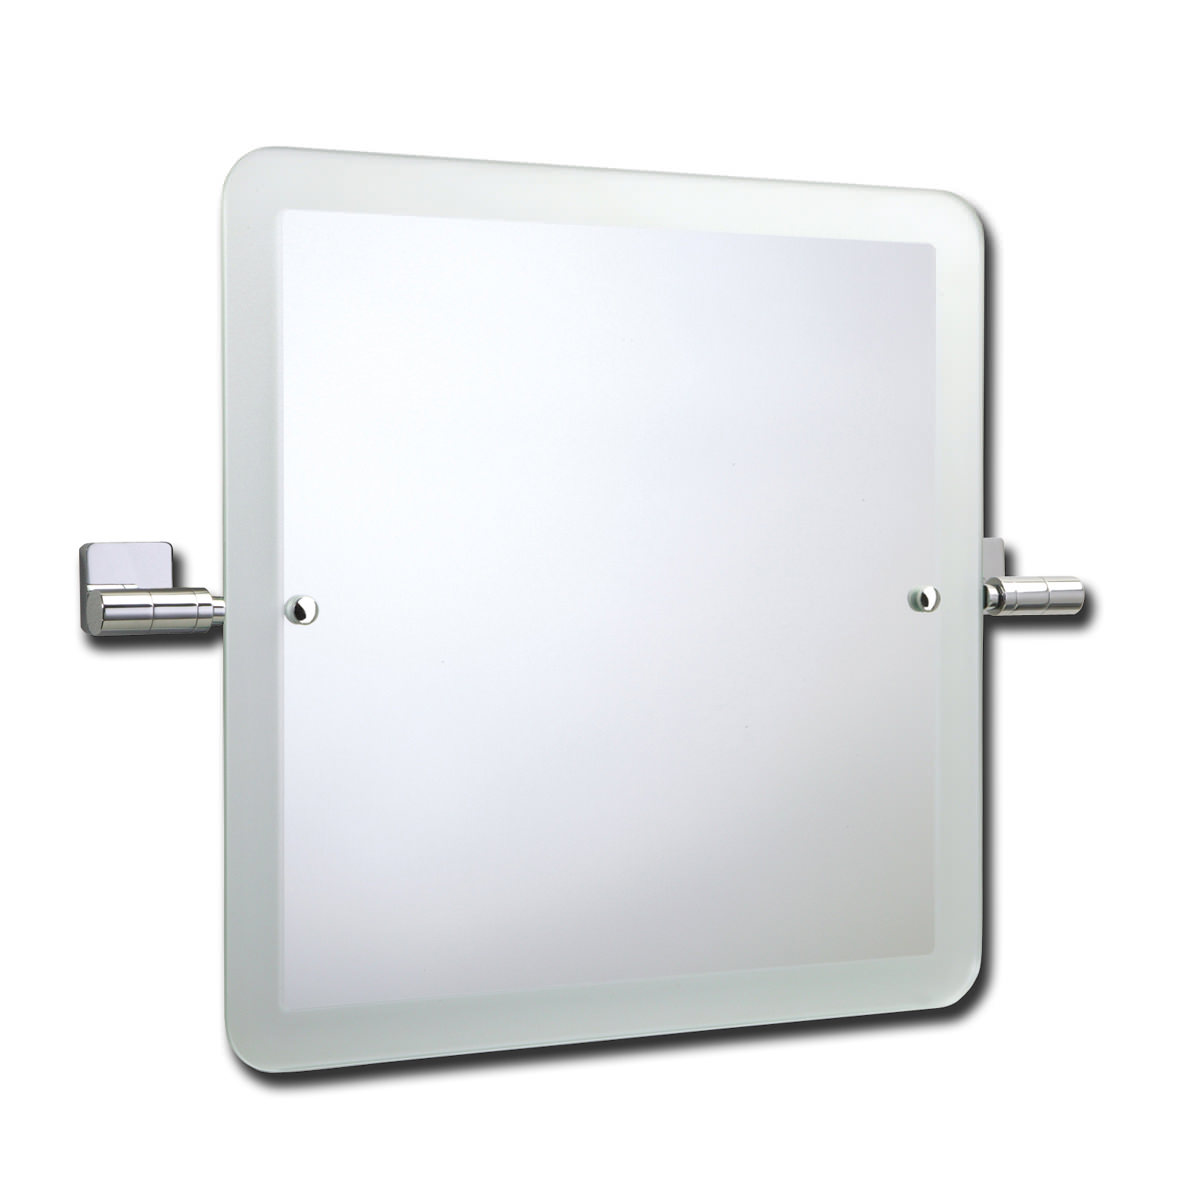 Roper Rhodes Glide Swivel Square Mirror with Frosted Edge